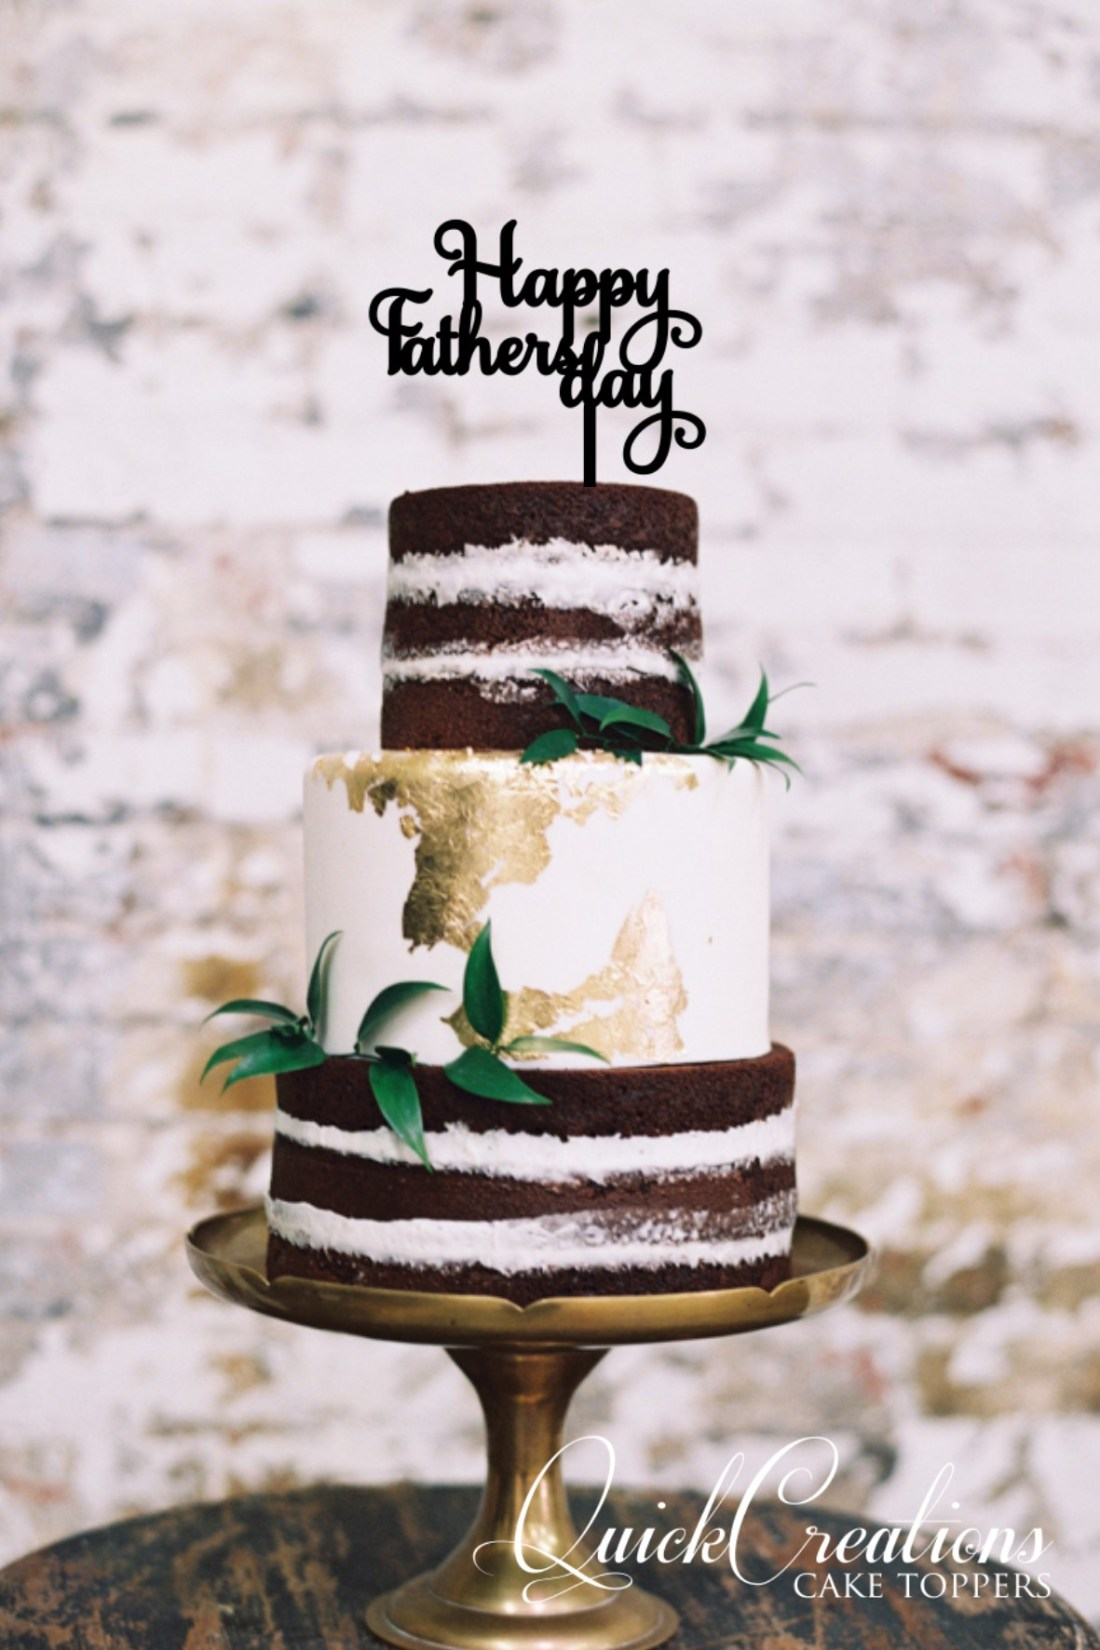 Quick Creations Cake Topper - Happy Fathers Day